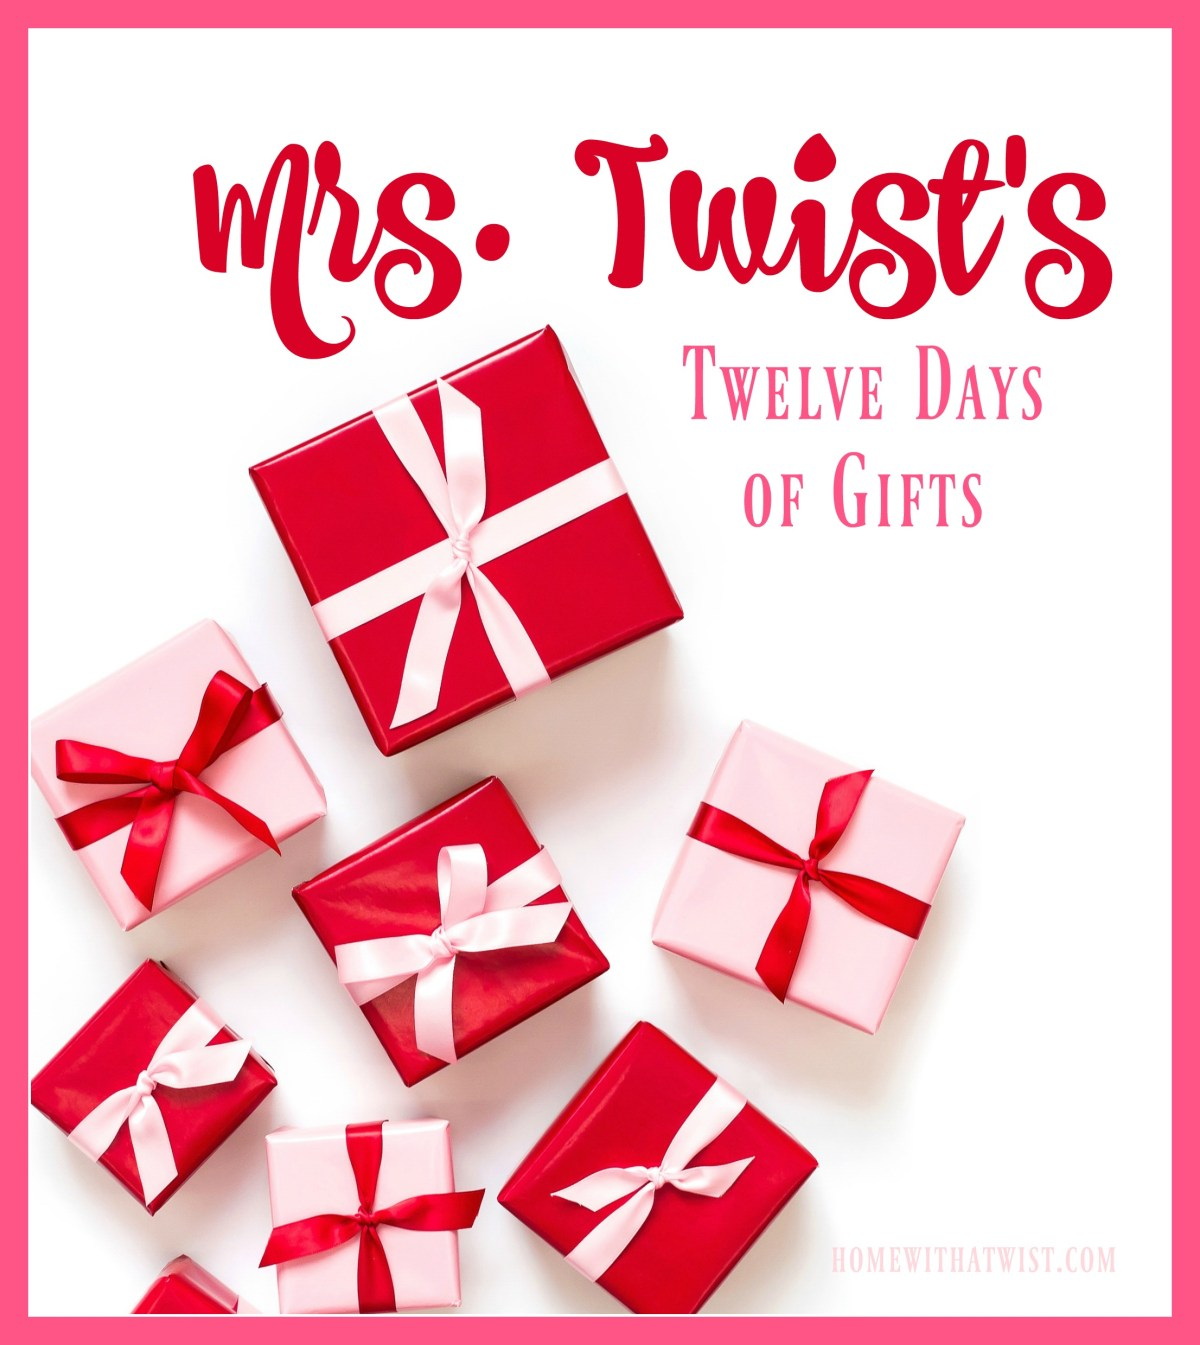 Mrs. Twist Gives This: Gift Ideas for Her